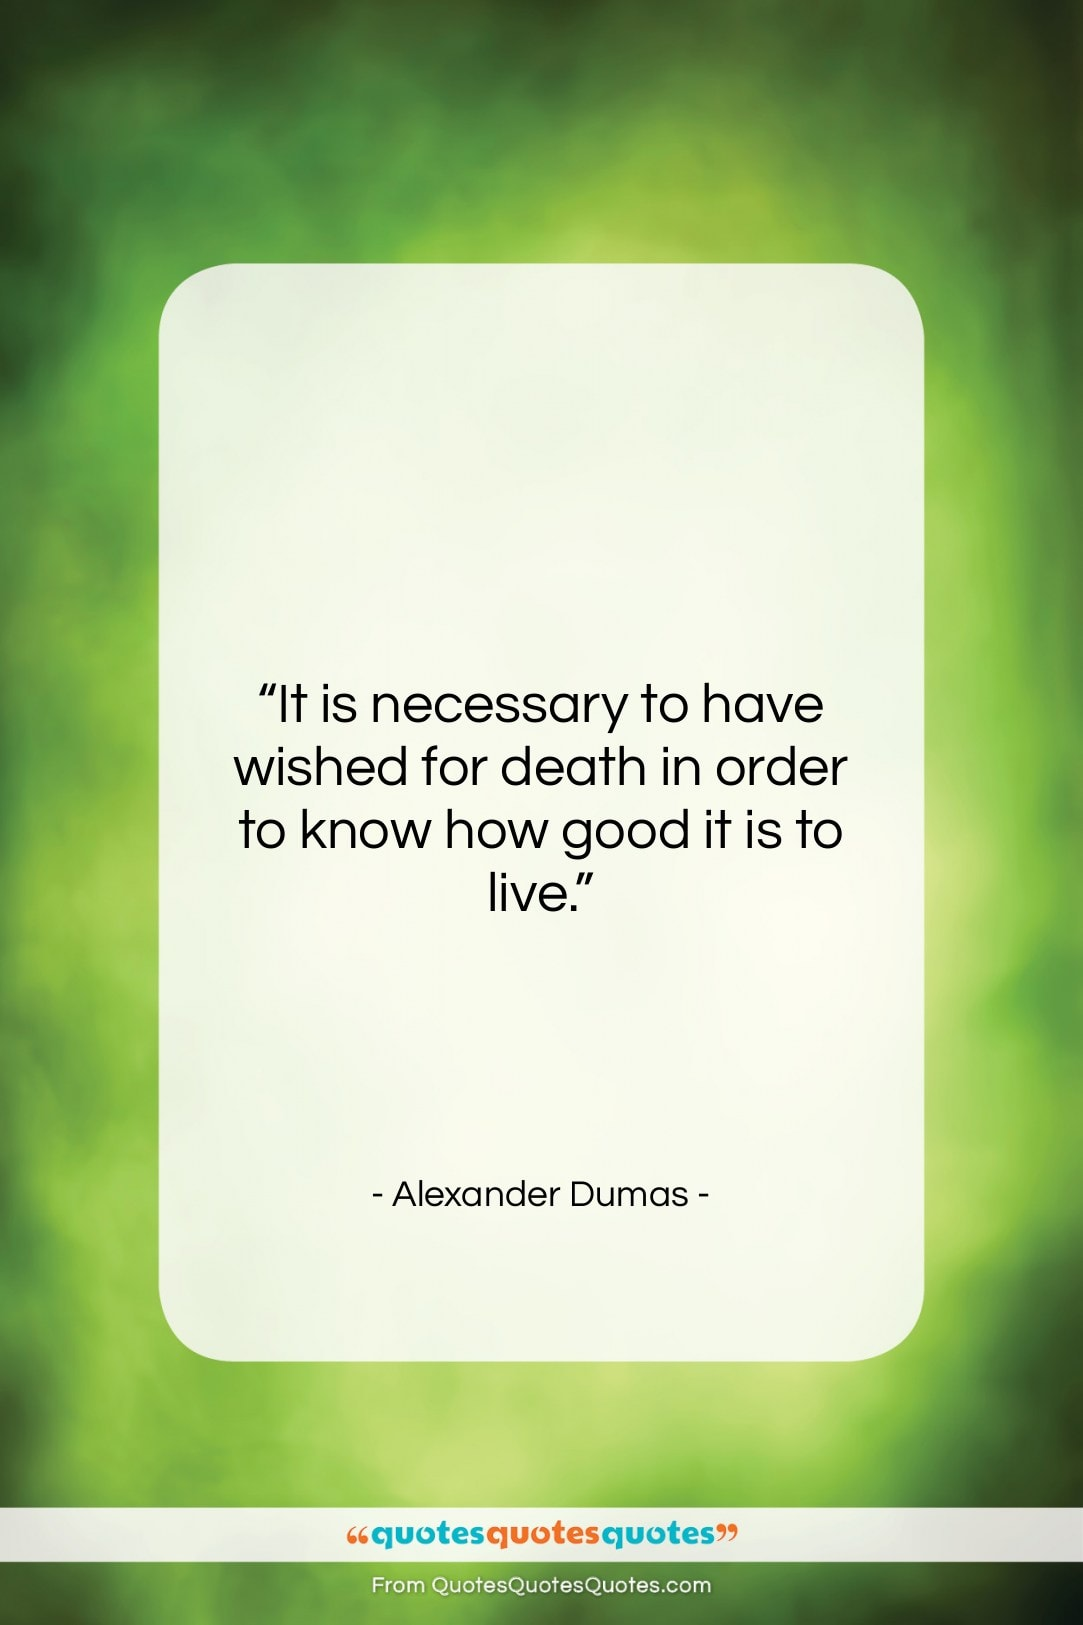 """Alexander Dumas quote: """"It is necessary to have wished for…""""- at QuotesQuotesQuotes.com"""